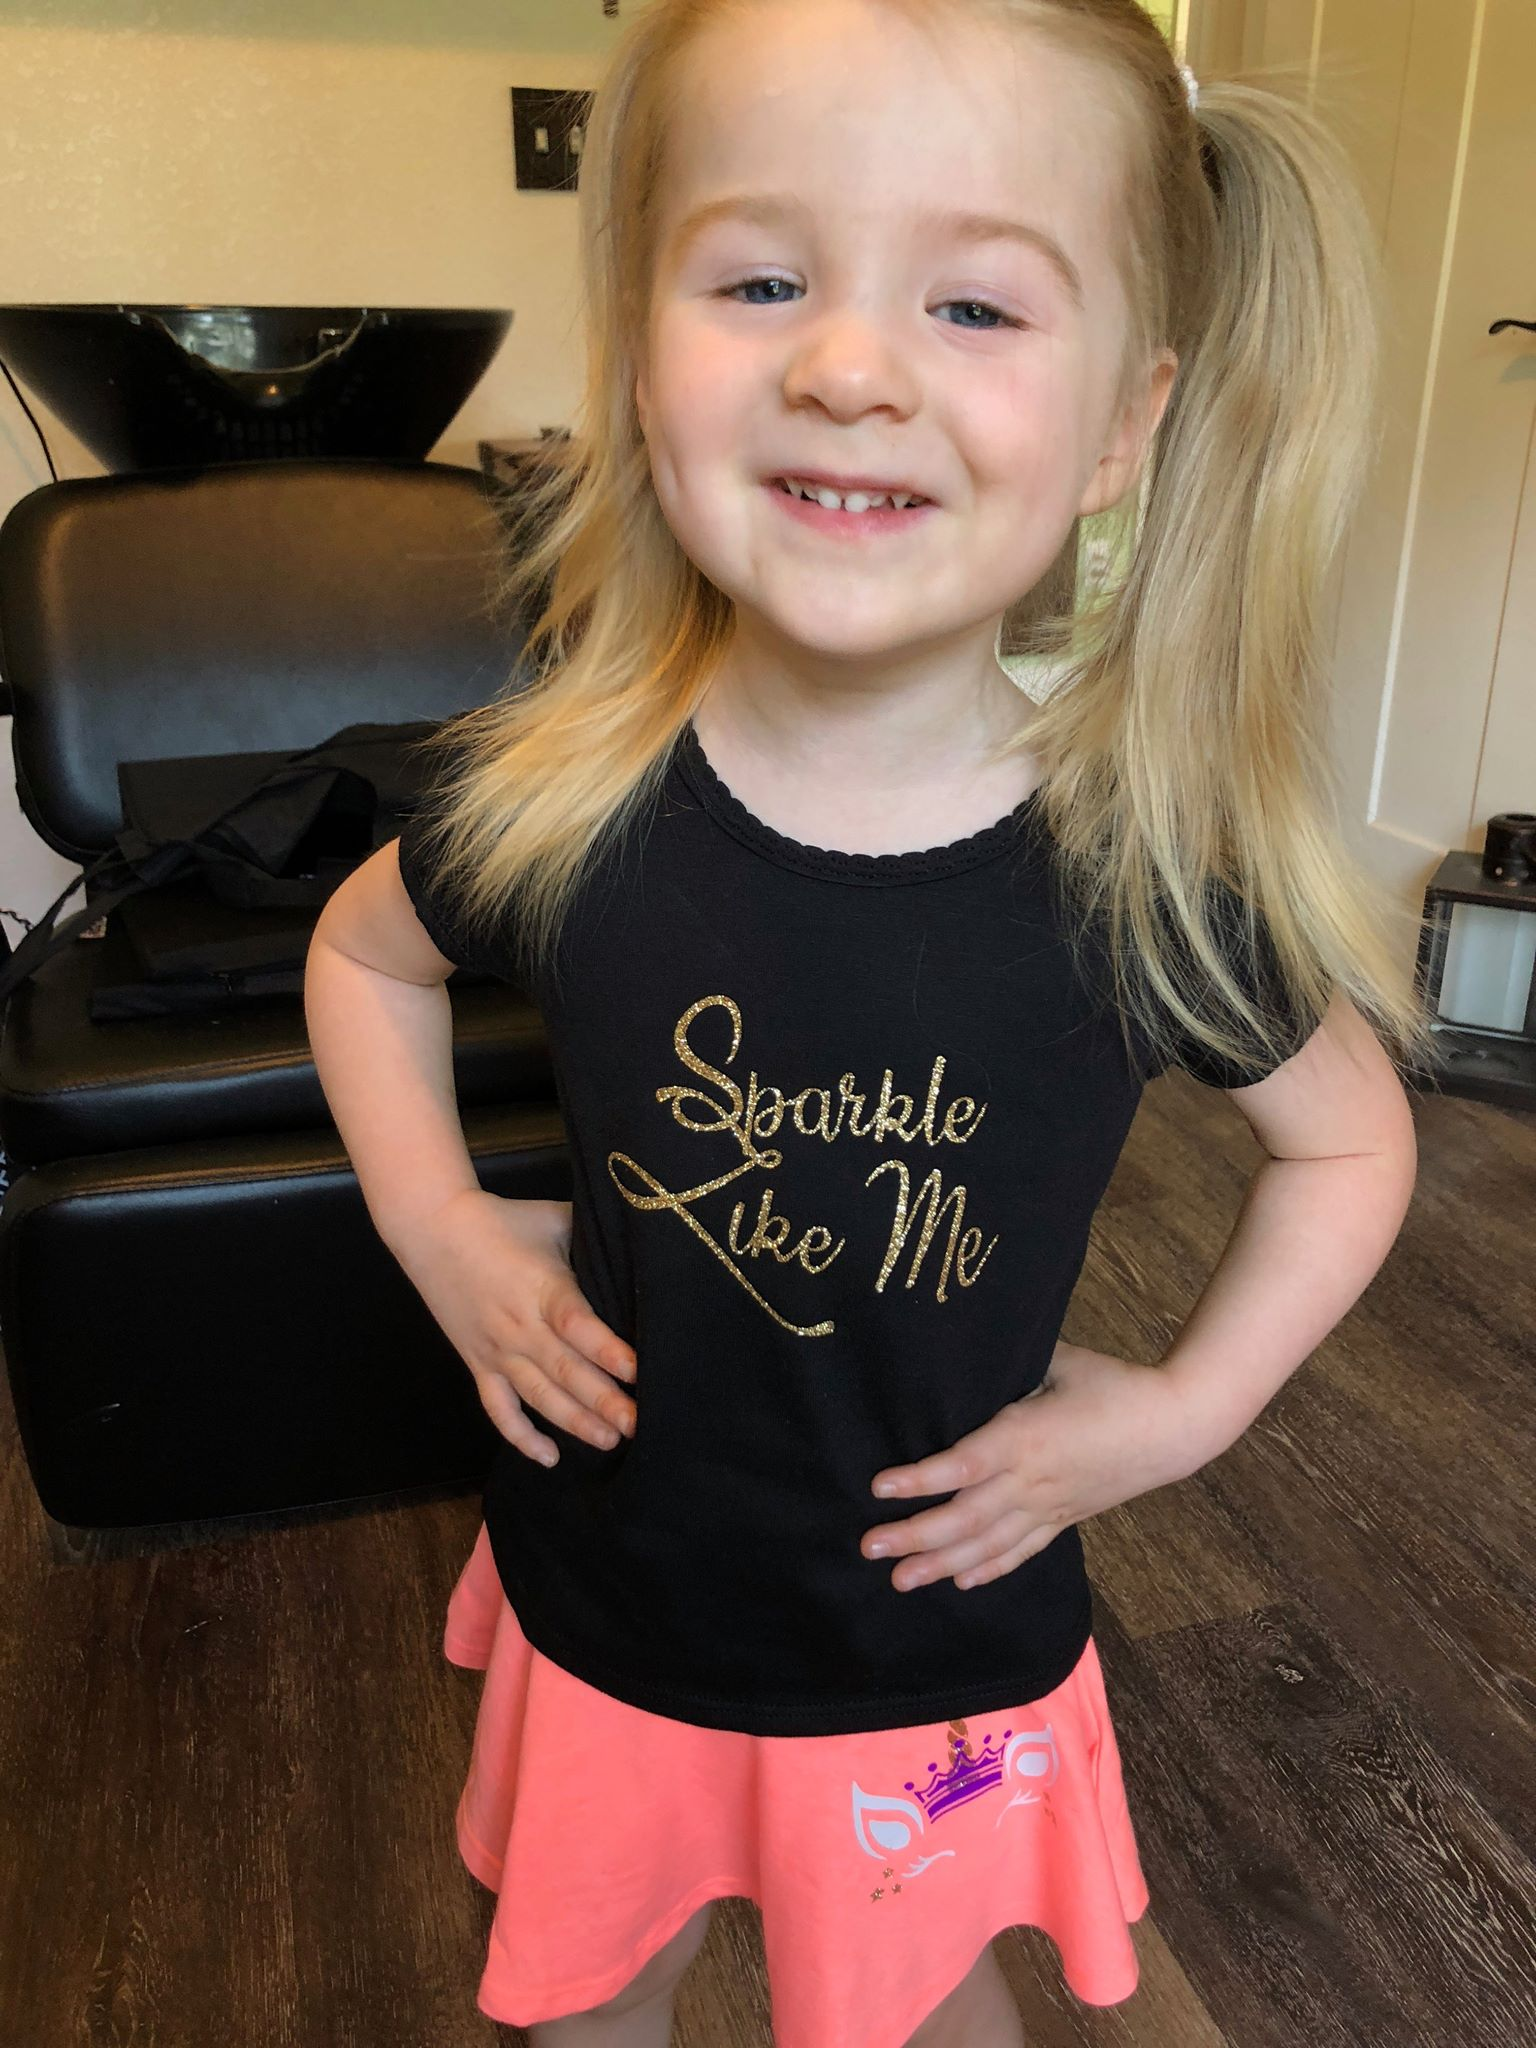 Sparkle Like Me shirt